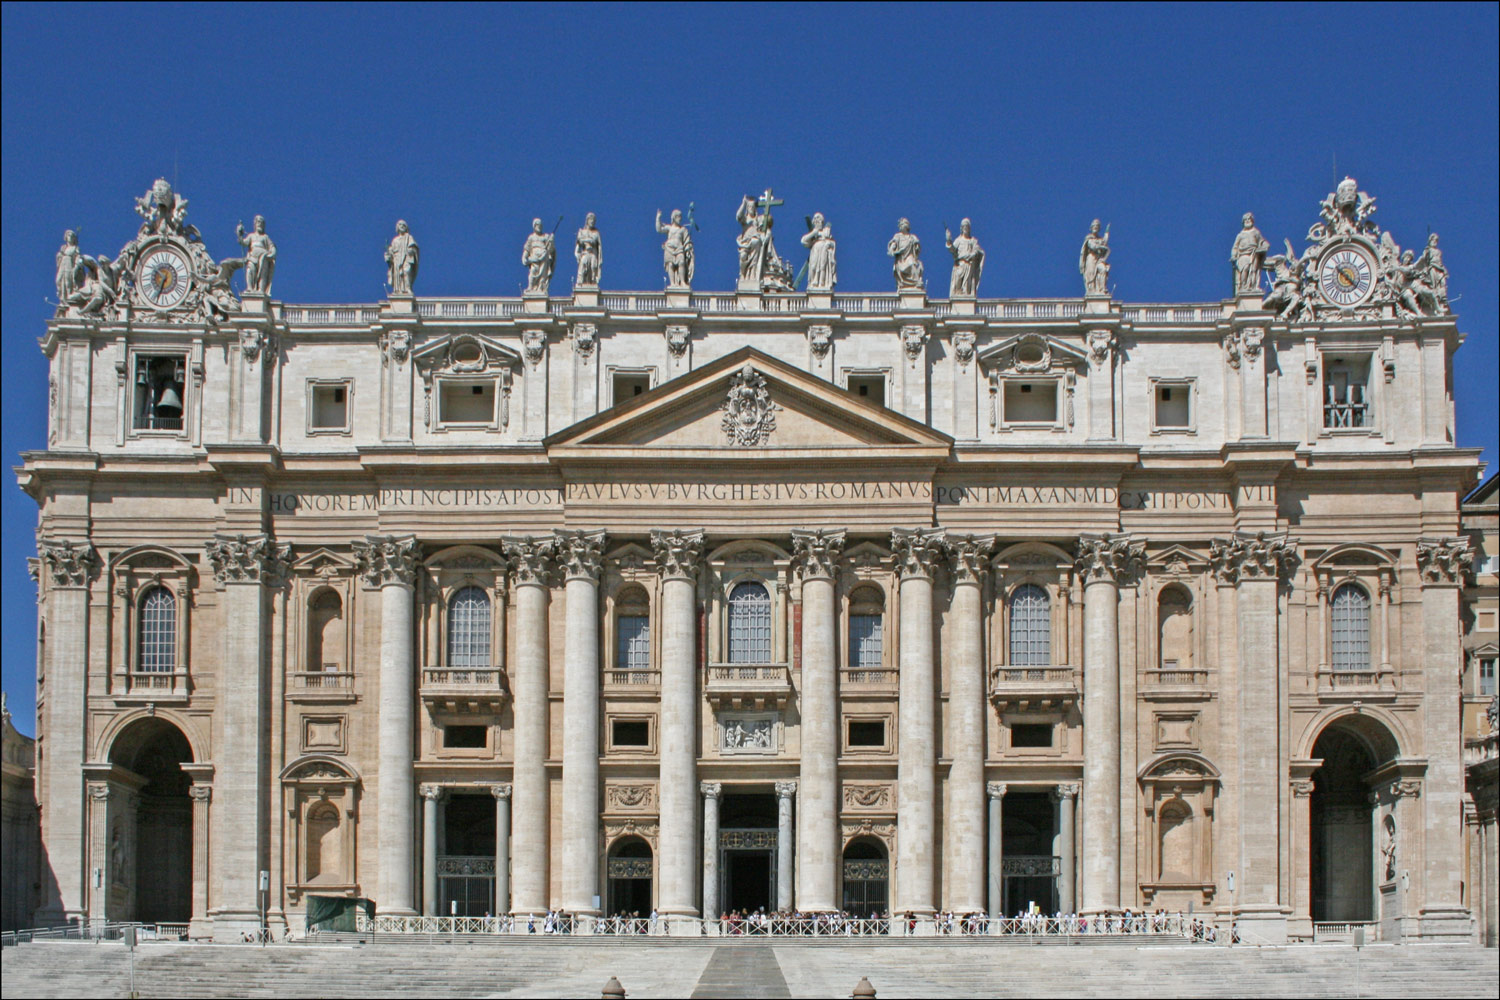 The Papal Basilica of Saint Peter